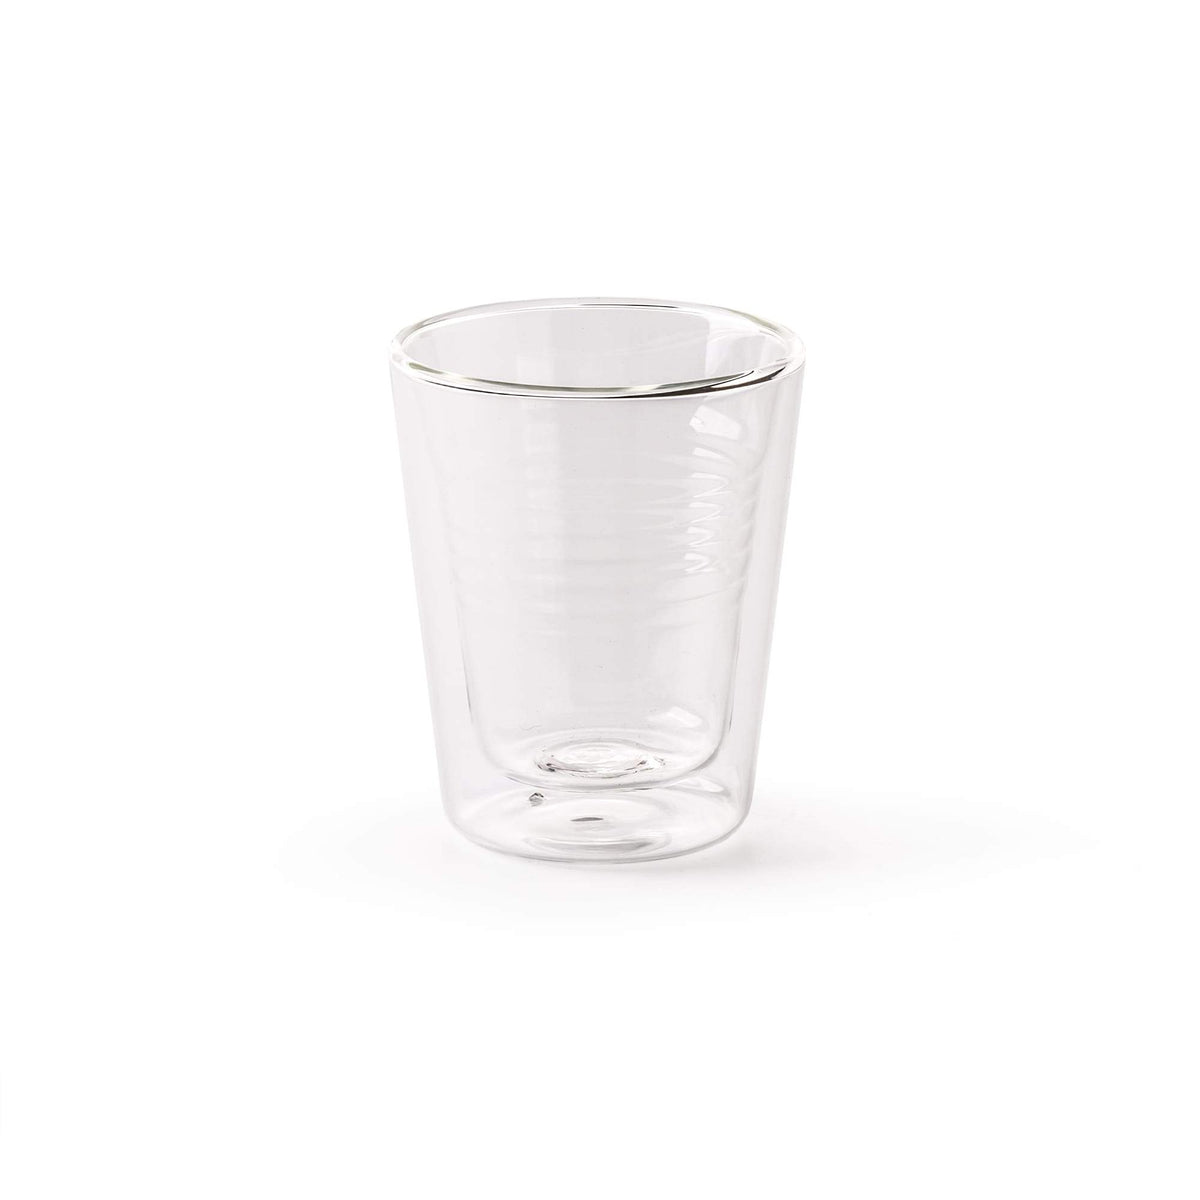 Estetico Quotidiano - Double Wall Tumbler